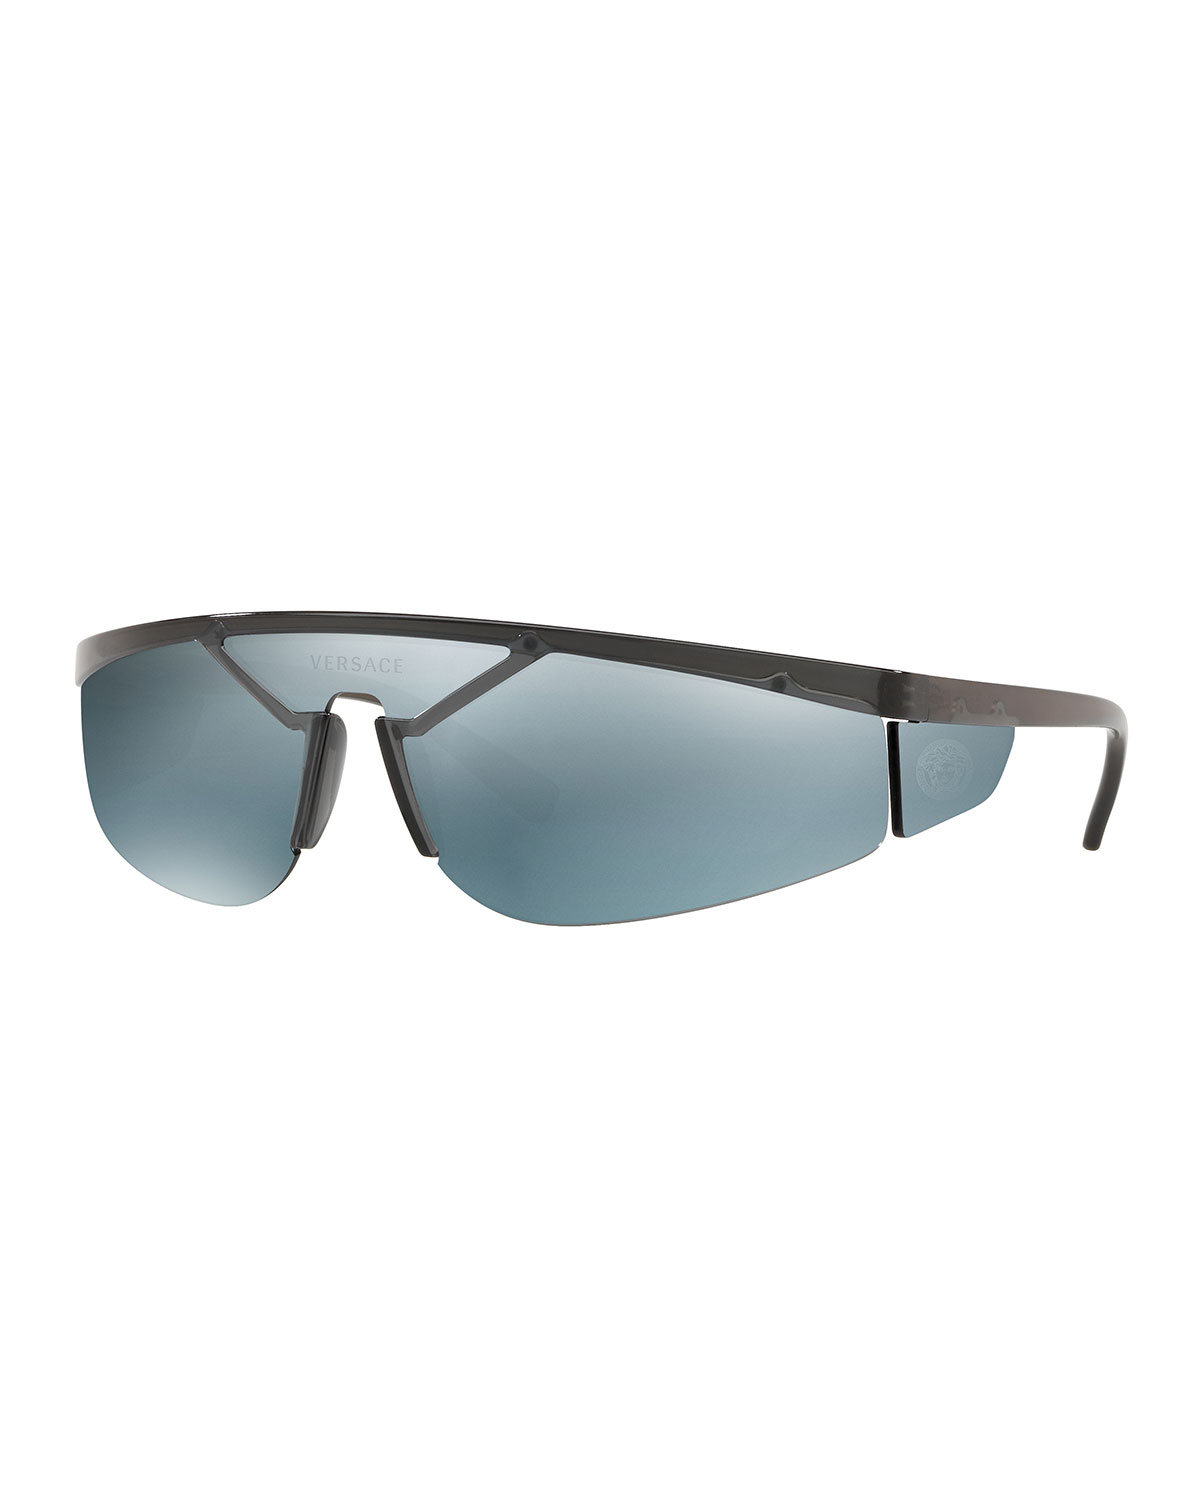 008d82671a63 Versace Men s Plastic Shield Wrap Sunglasses with Mirrored Lens ...